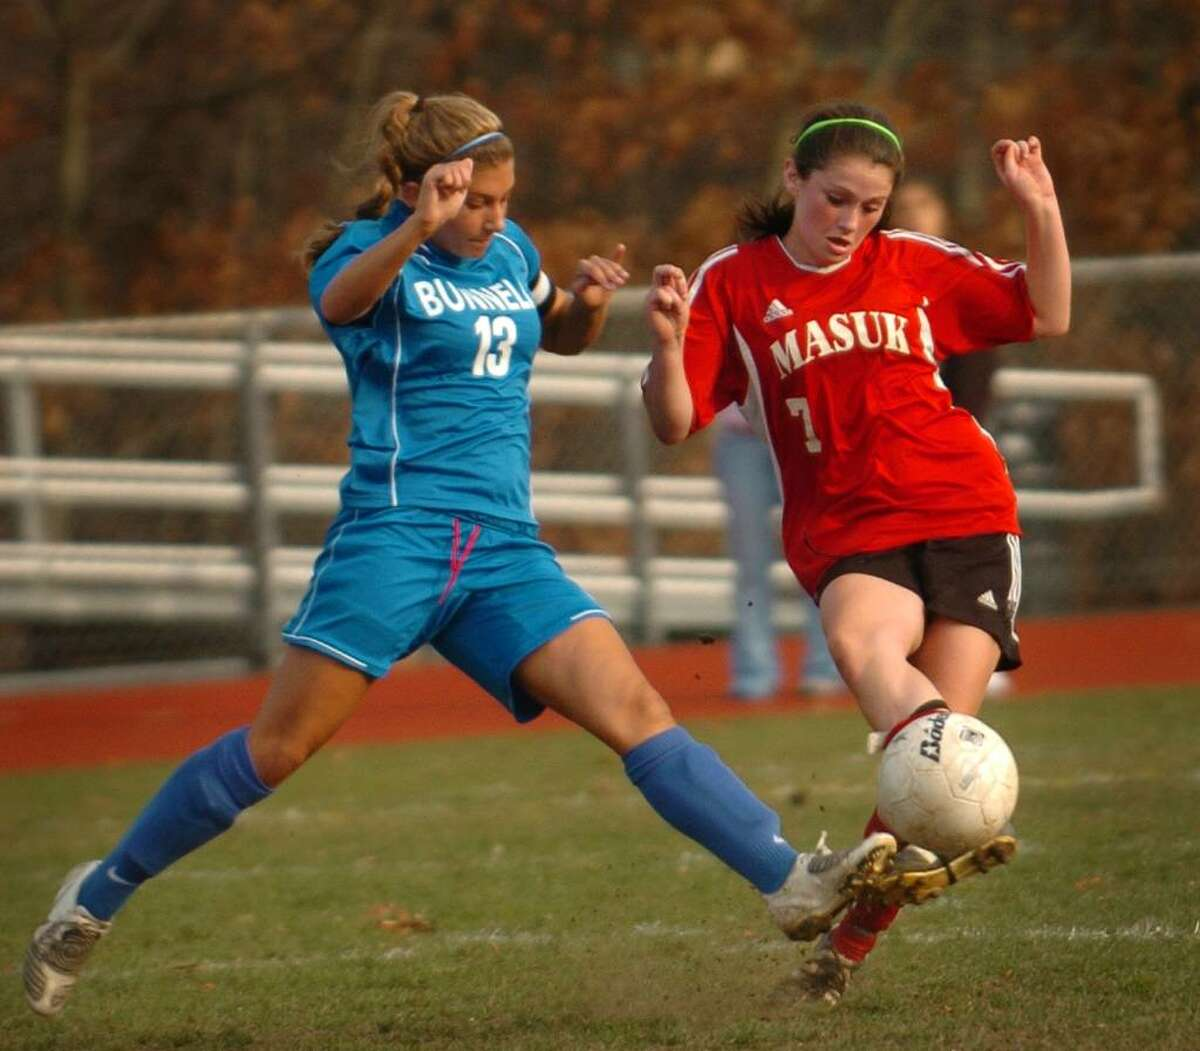 Bunnell's Bridgette Dolio, left, and Masuk's Aislinn McKeown converge on the ball during Monday's matchup in the opening round of the Class L state playoffs.